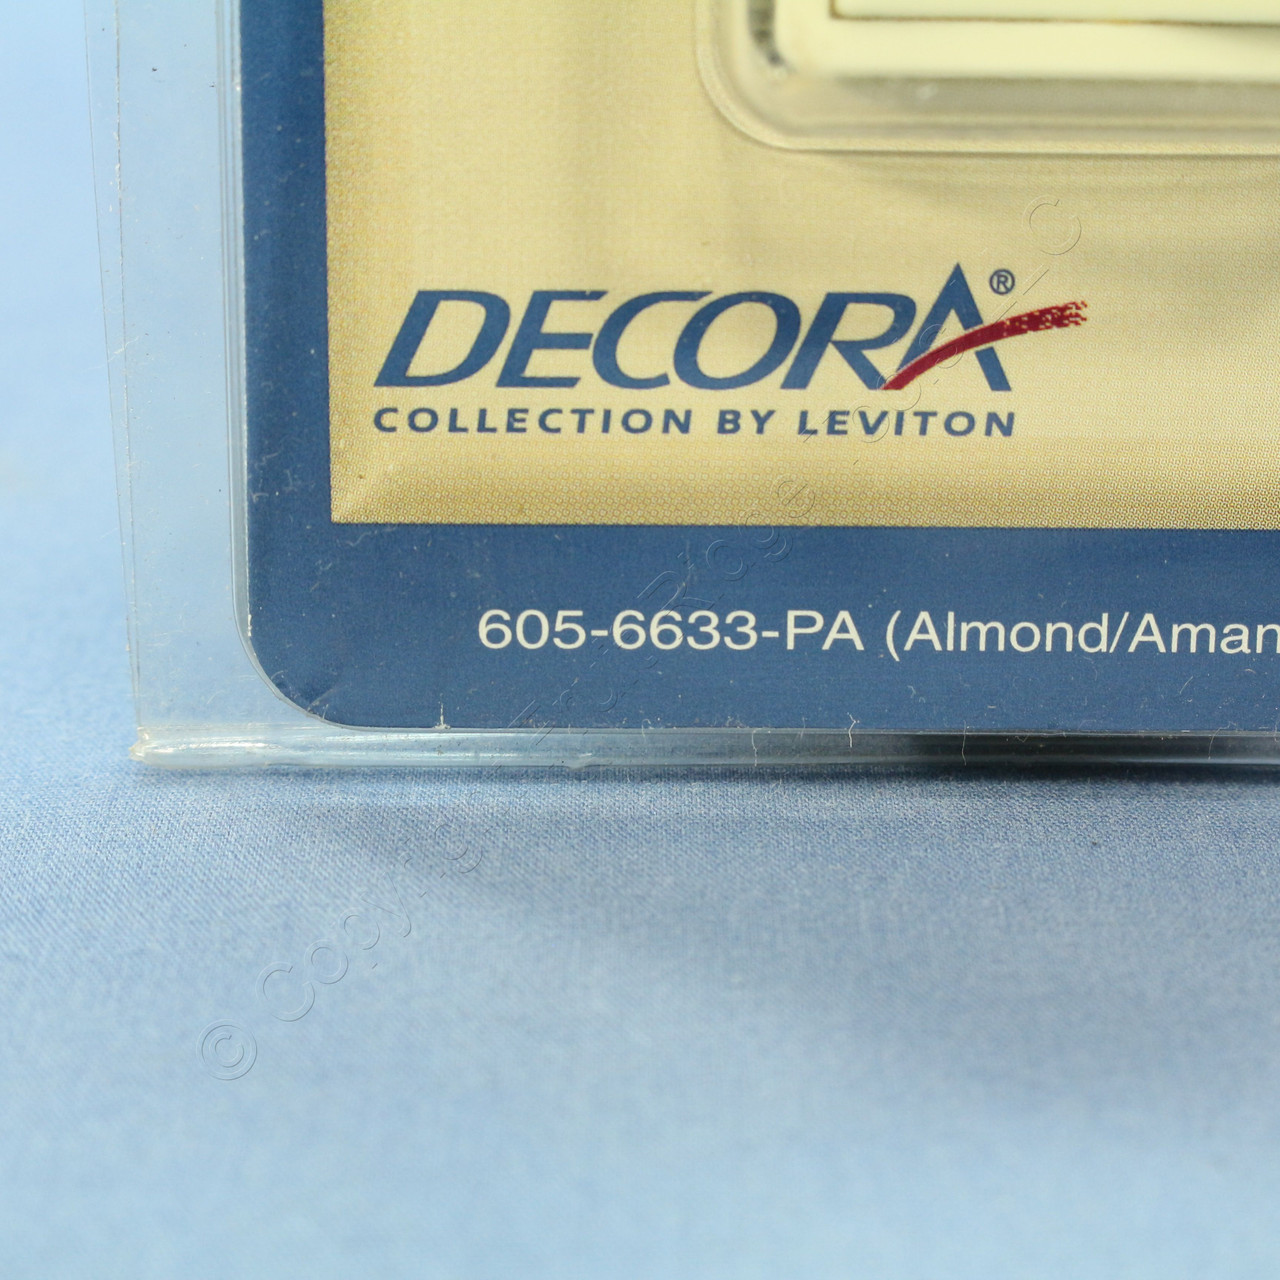 shop leviton almond decora lighted slide dimmer switch preset wiring a leviton dimmer switch on cord [ 1280 x 1280 Pixel ]